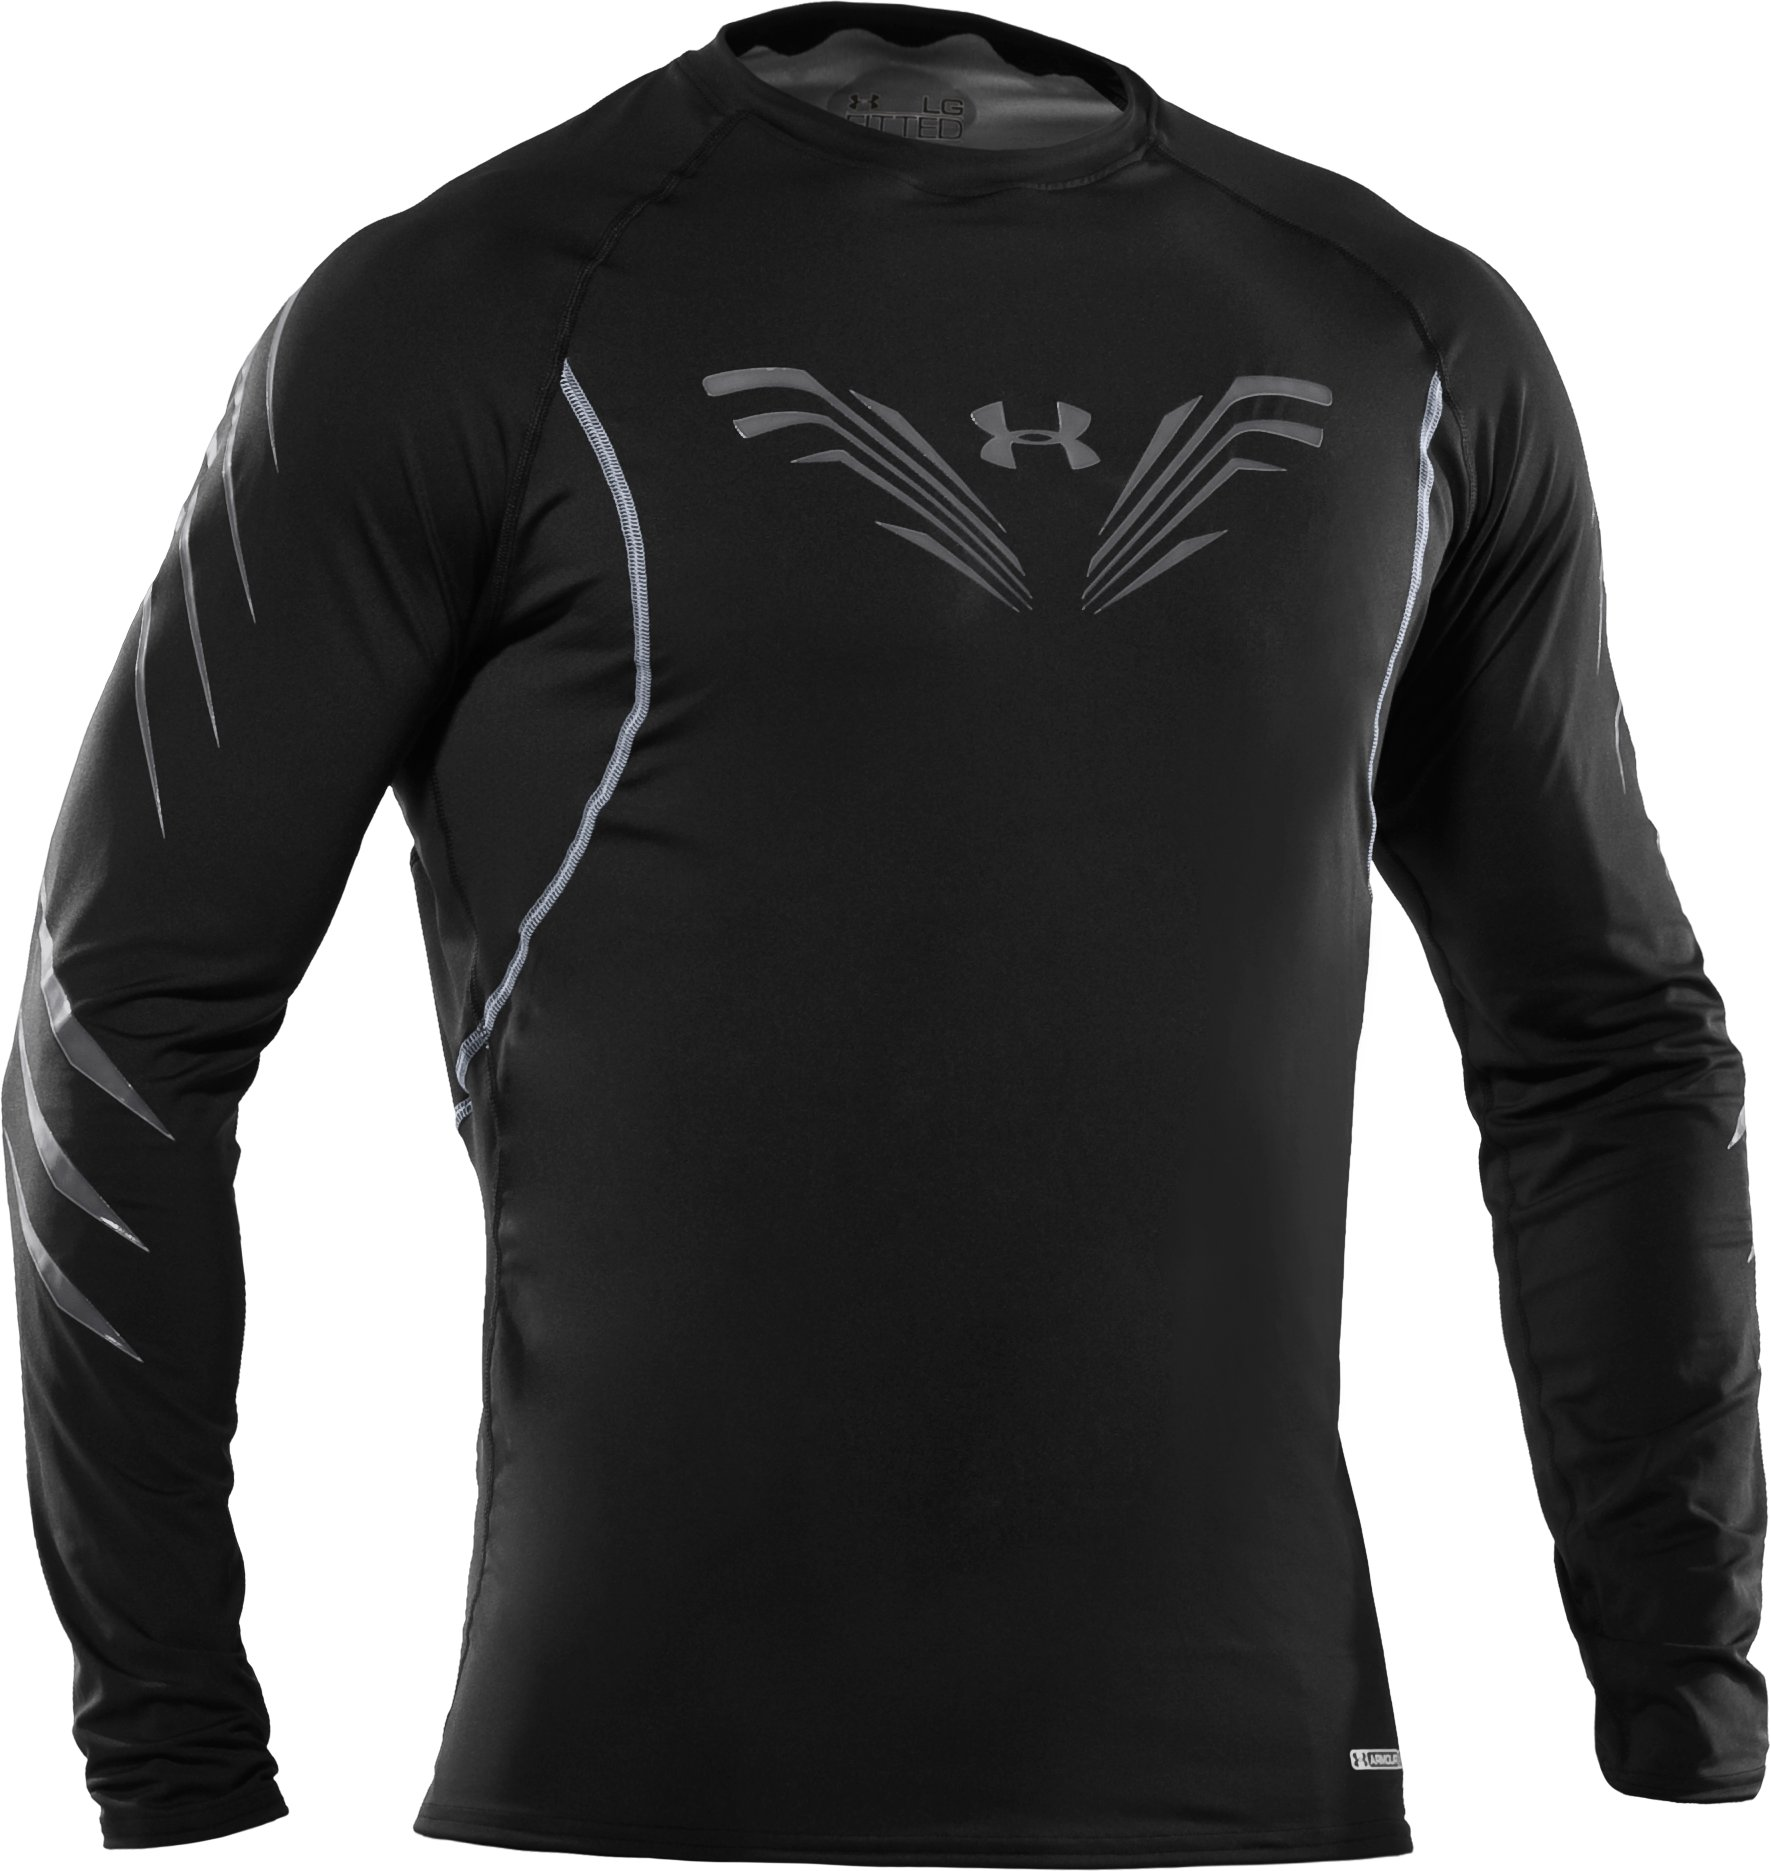 Men's Fitted Hockey Long Sleeve Shirt, Black